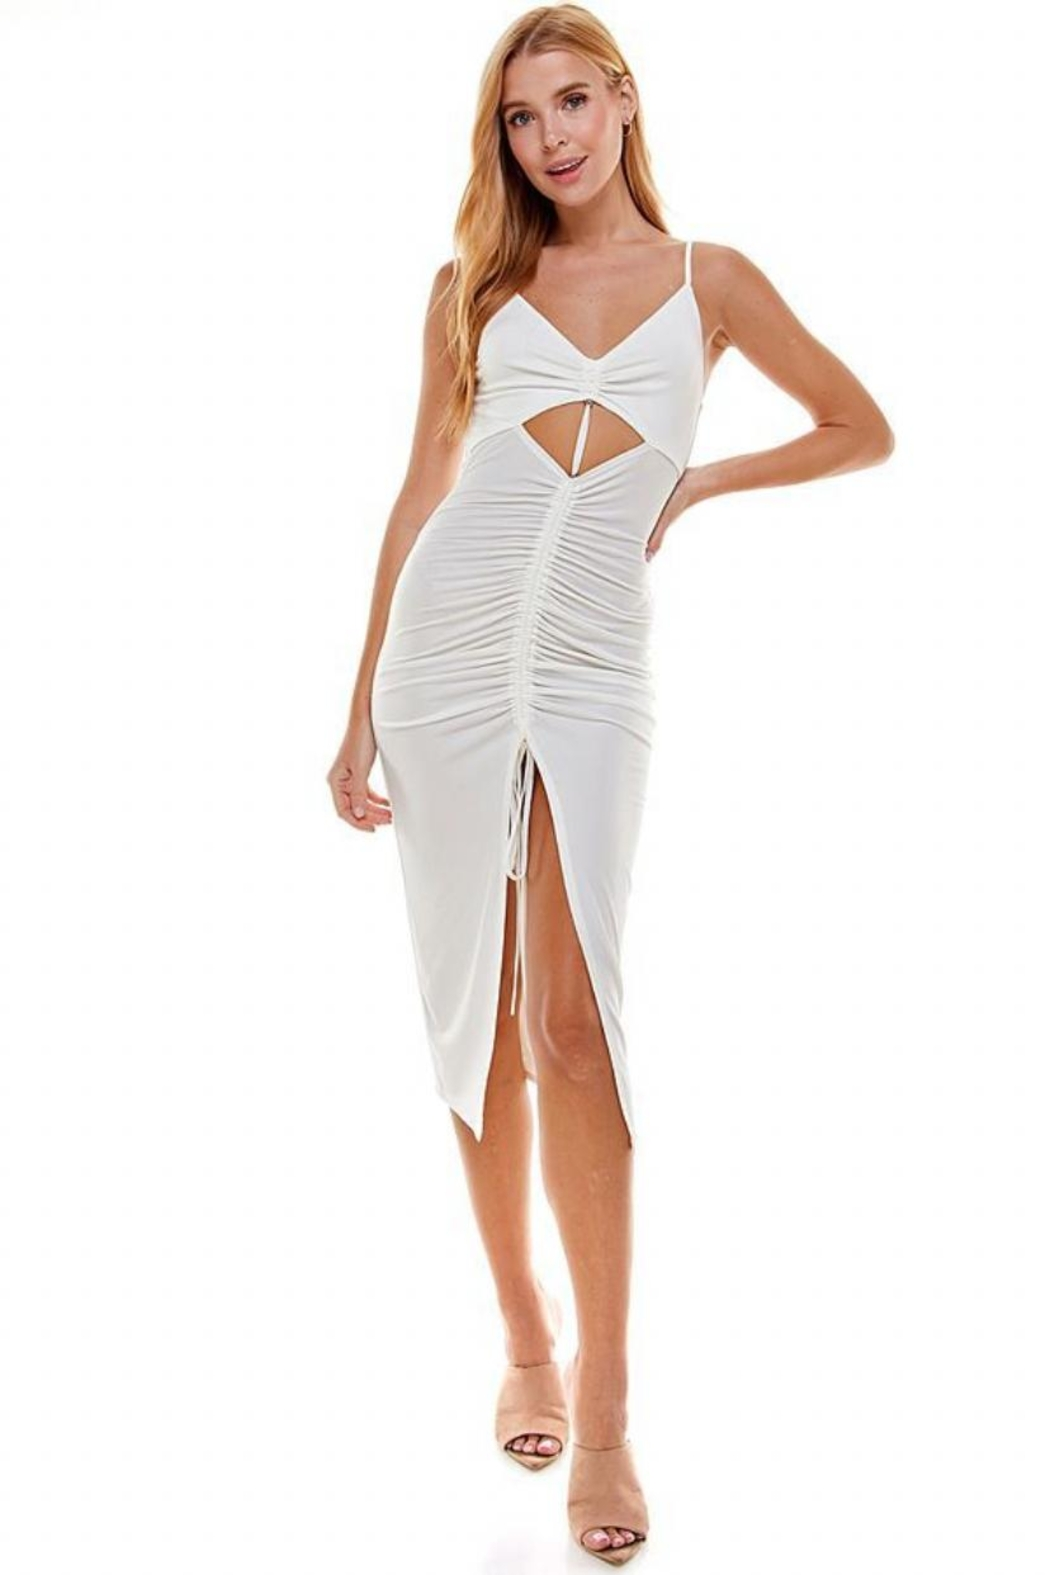 ACOA Cut-Out Ruched Dress - Main Image